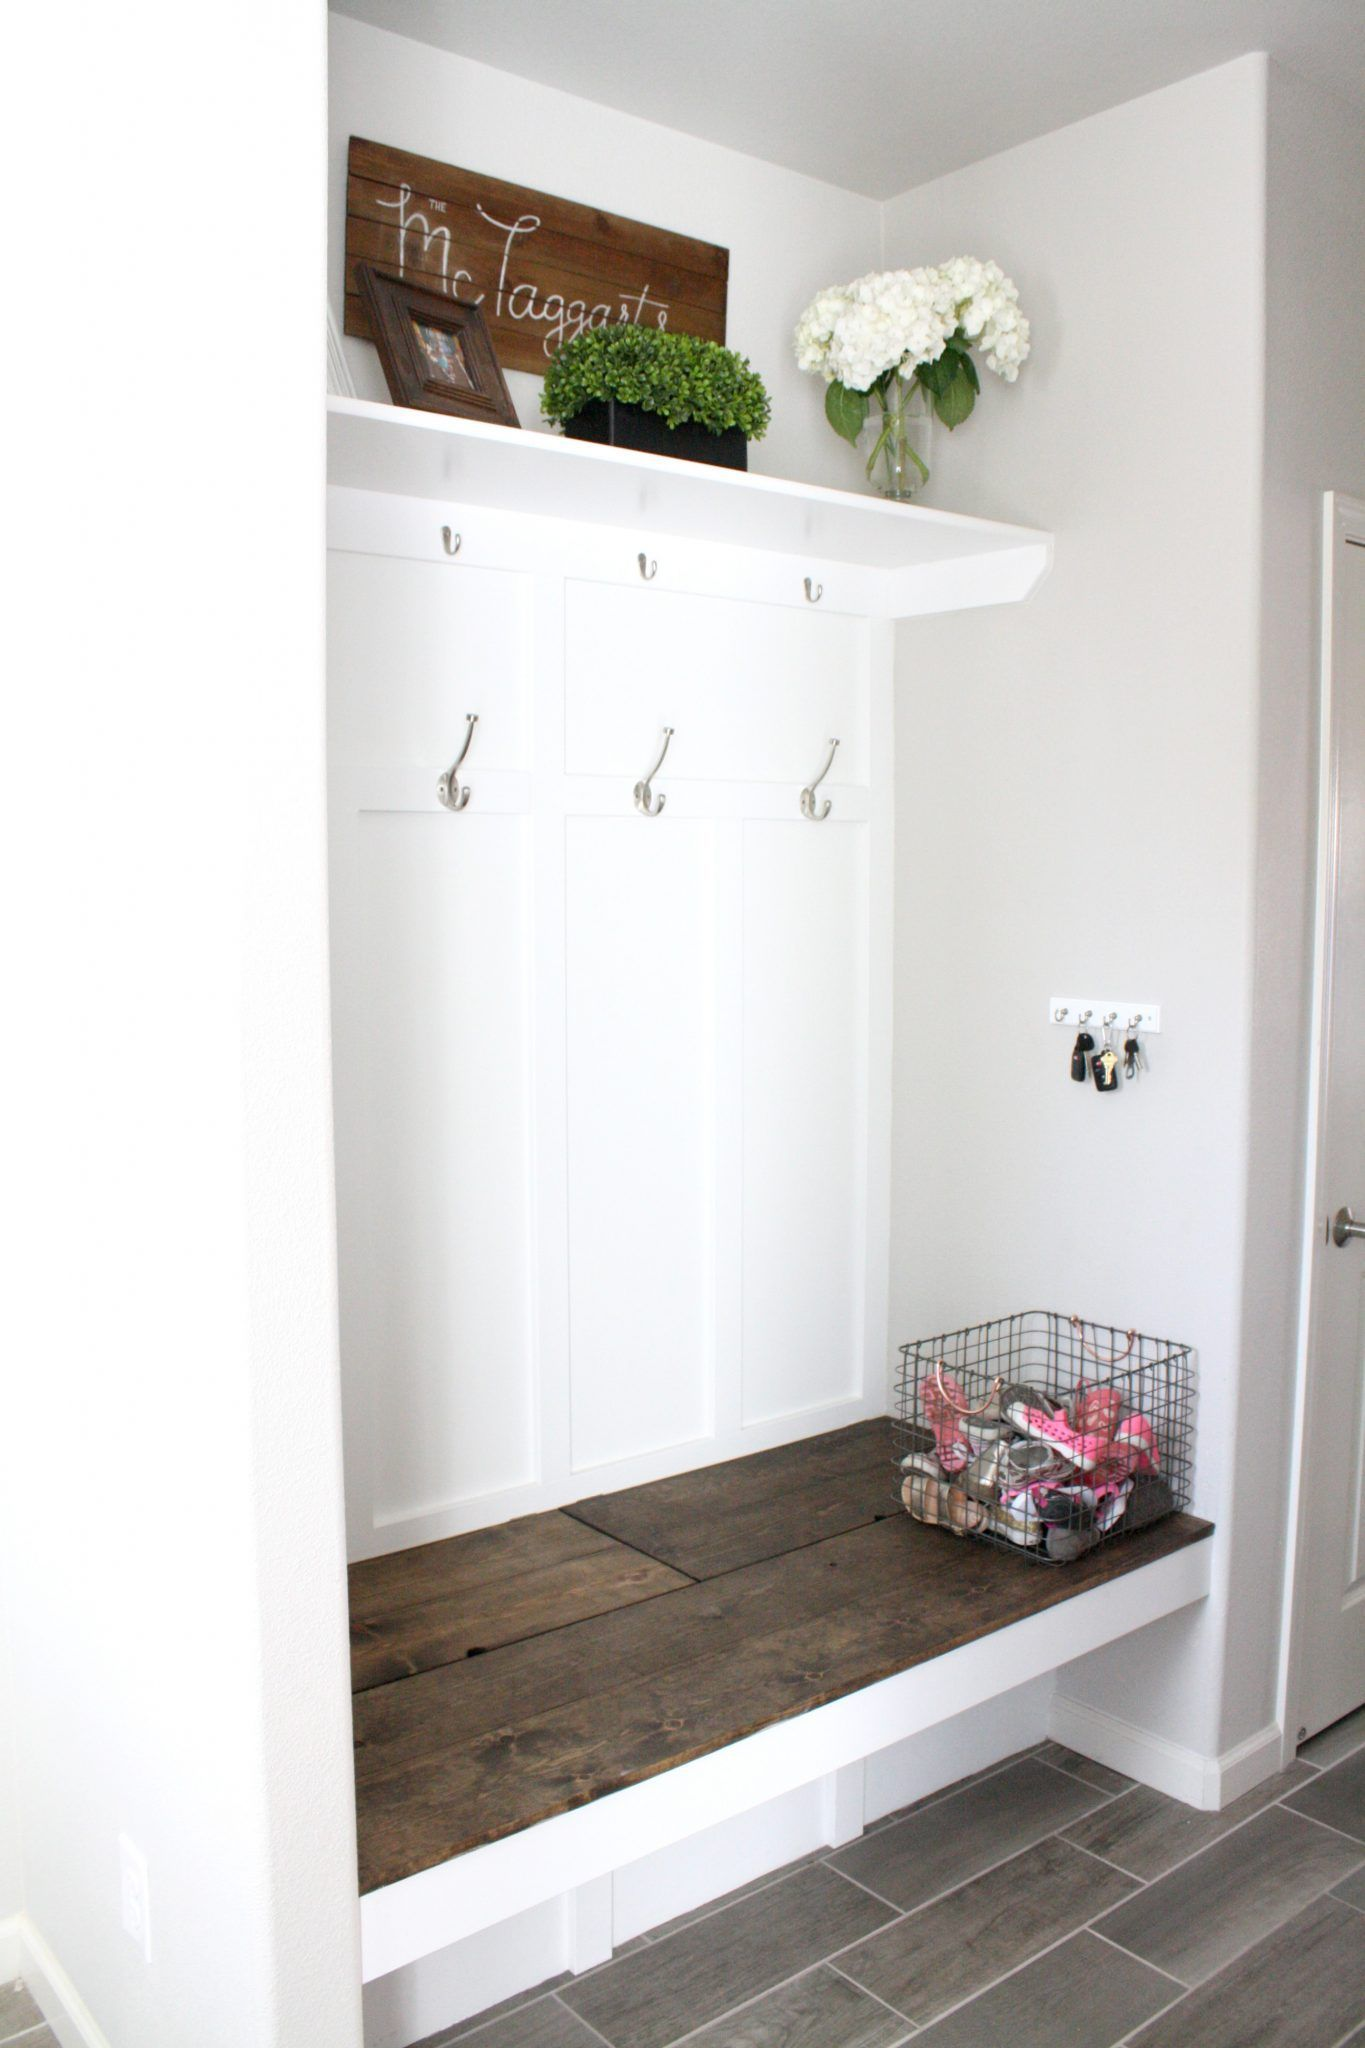 Mudroom Bench Mudroomideas Entry Closet Mudroom Mudroom Design